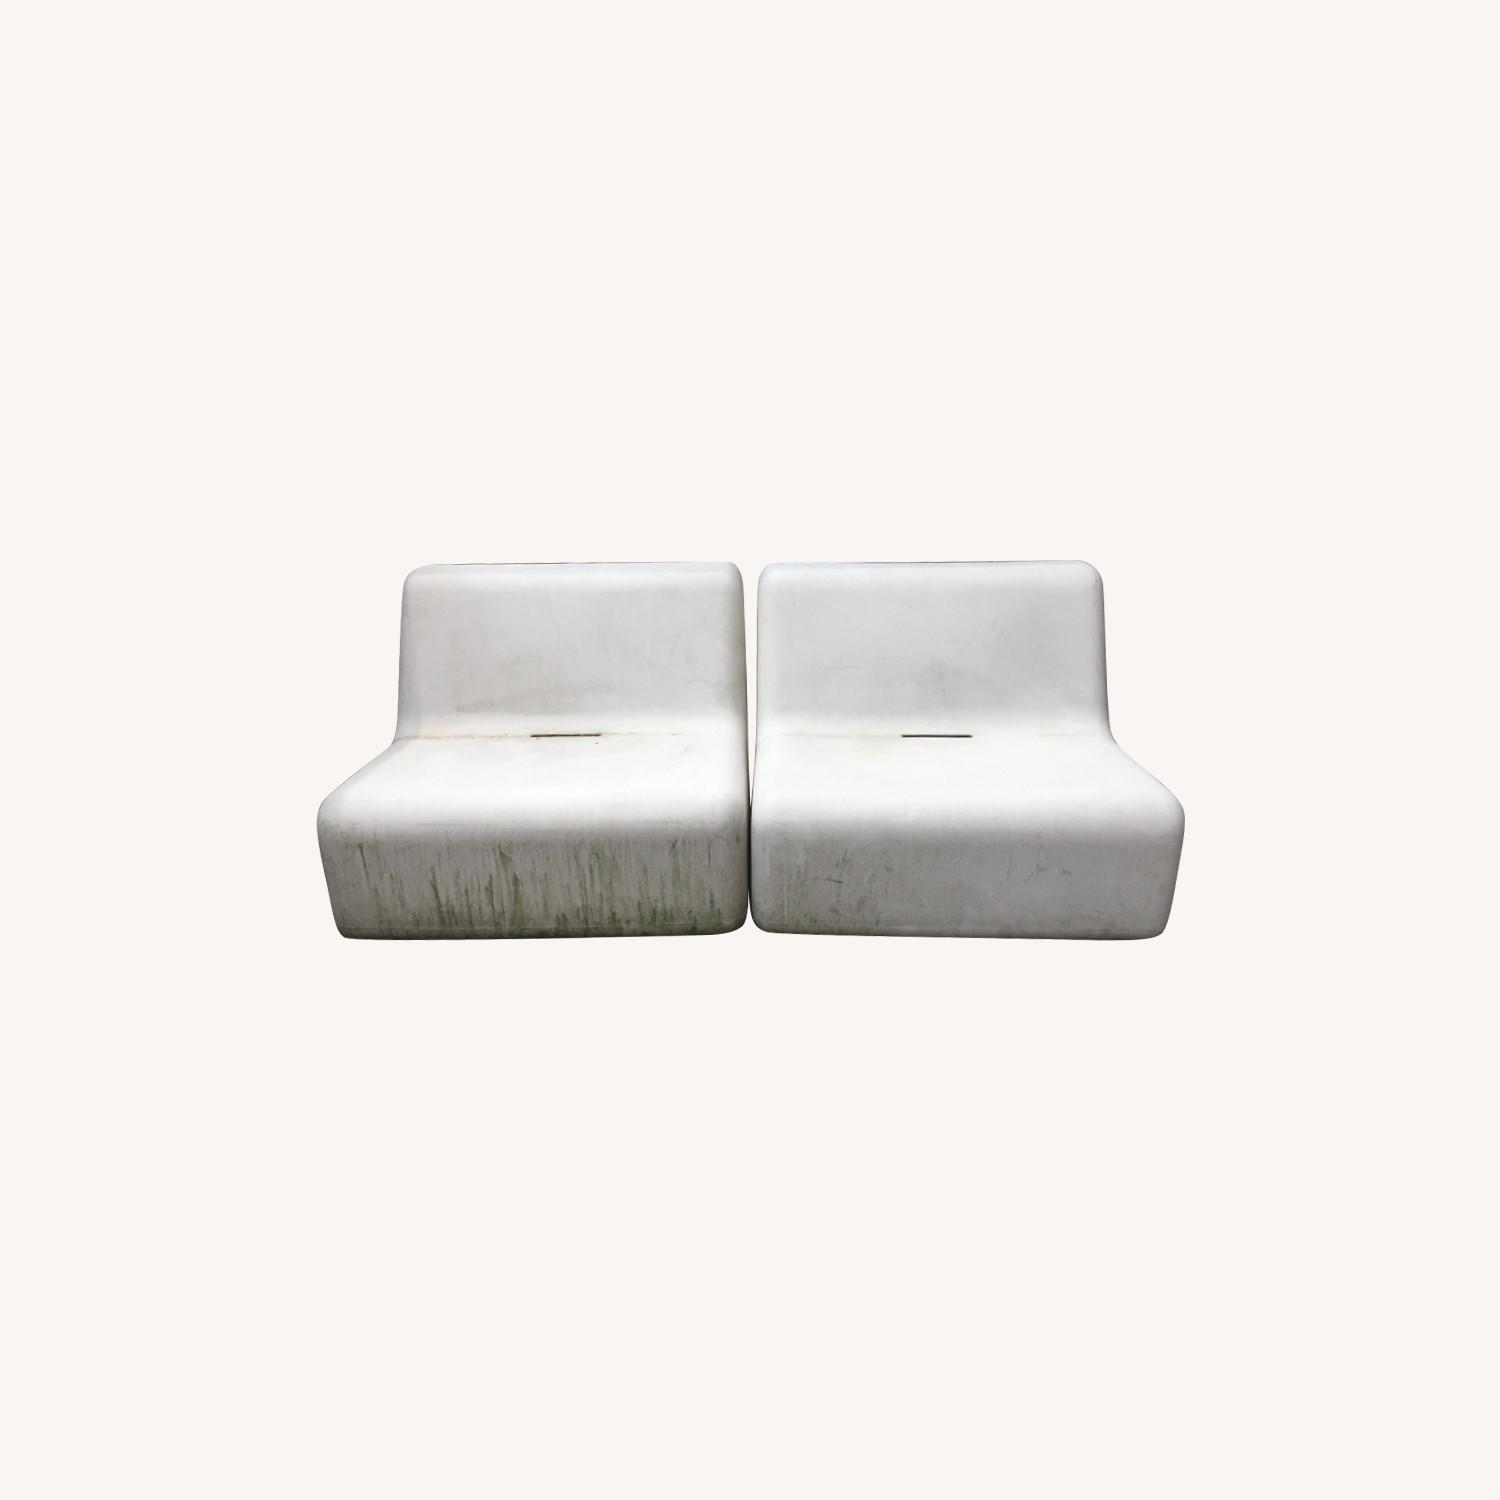 Modern Recycled Plastic Outdoor Seating - image-0